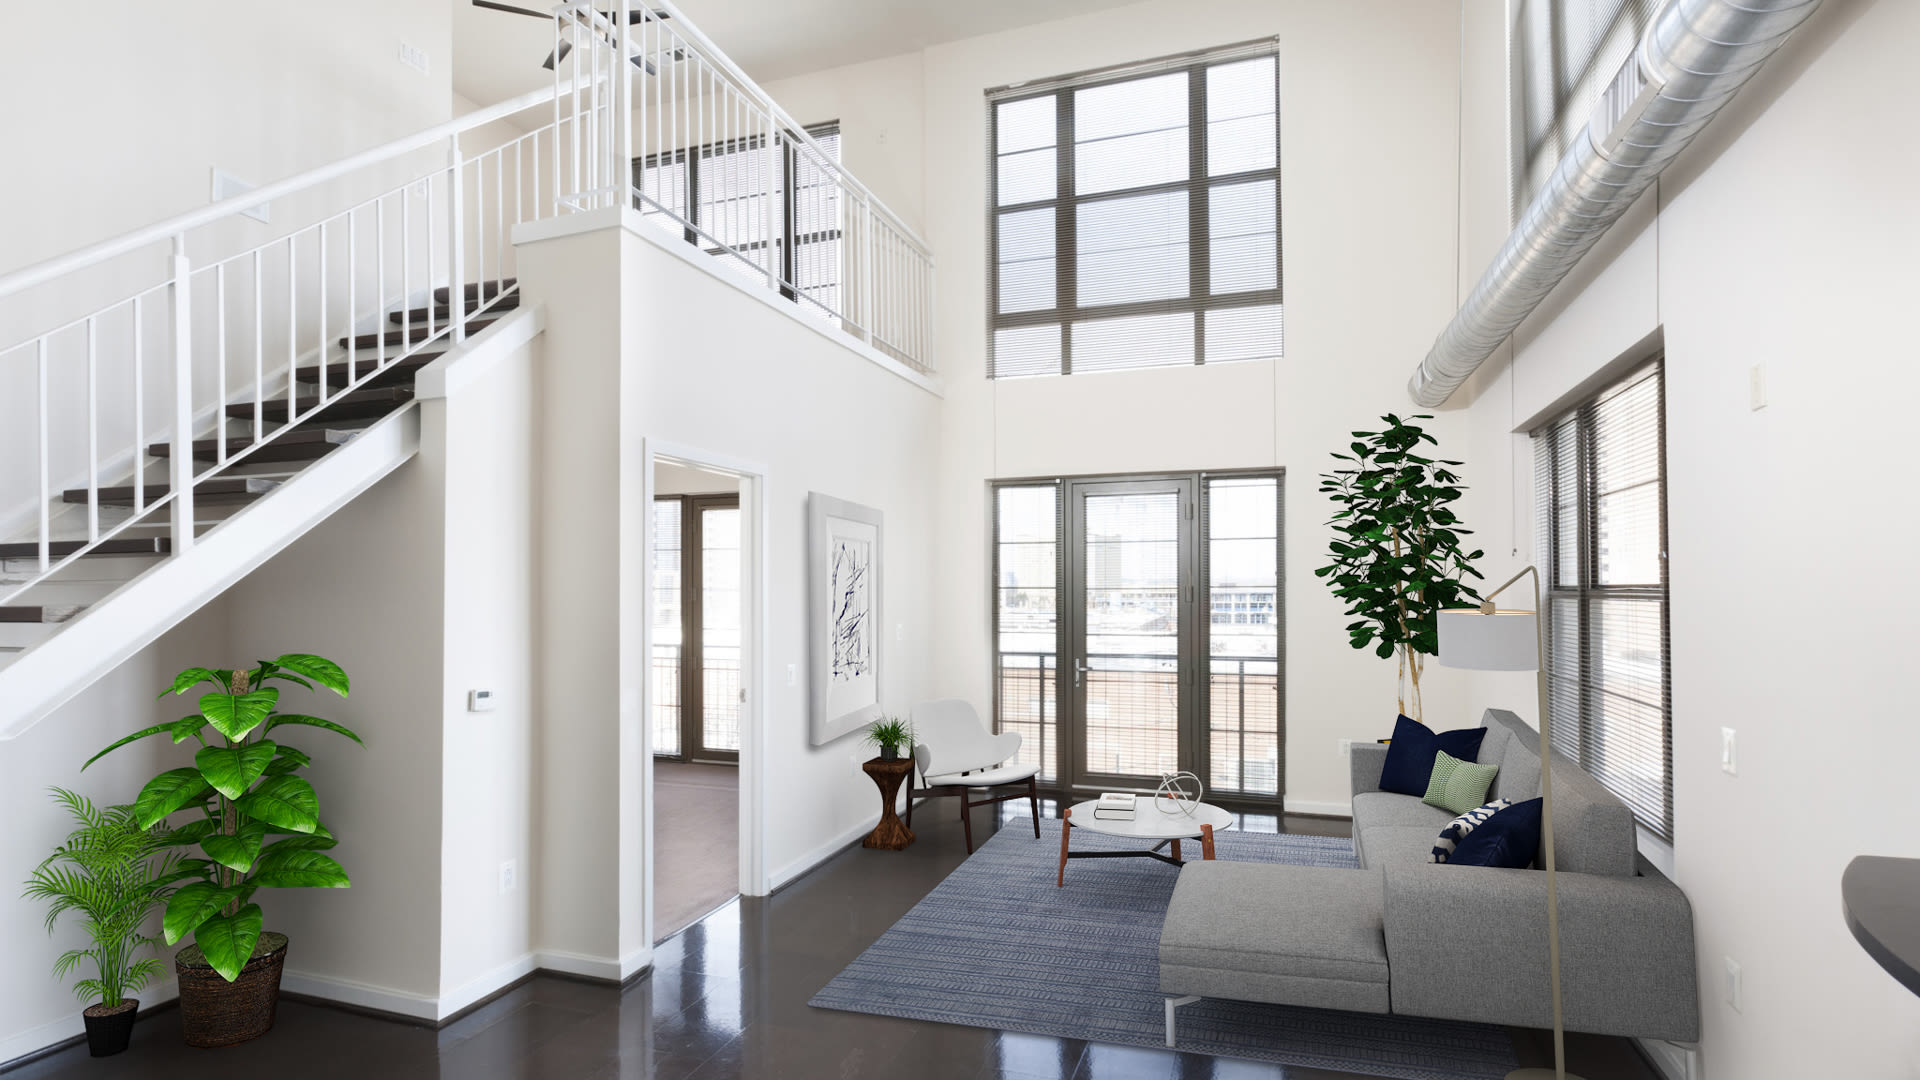 Lofts 590 Apartments - Living Room with Cork and Polished Concrete Flooring and Ceiling Fans